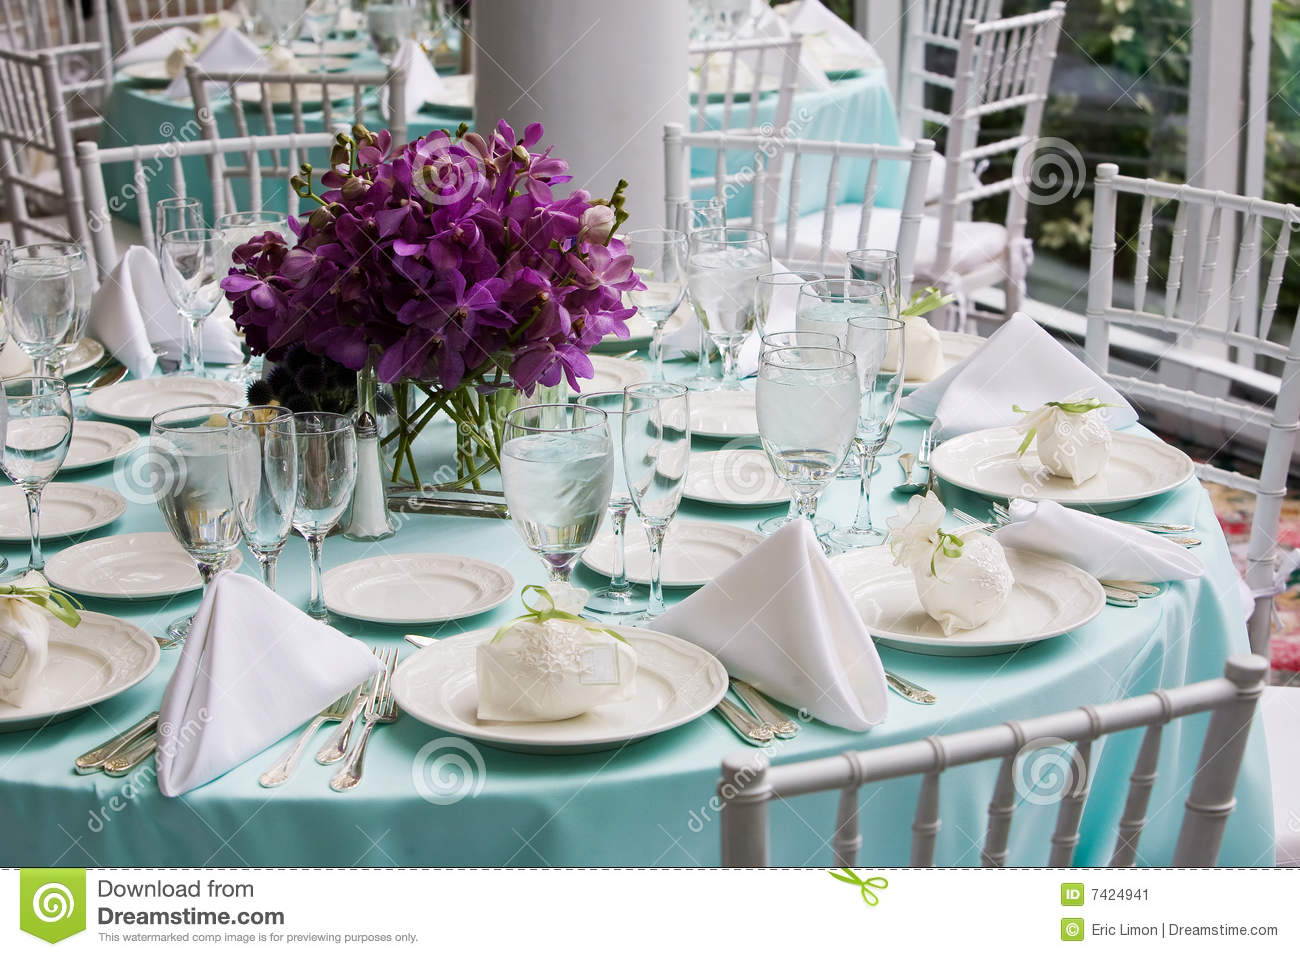 Table Set For A Wedding Reception Stock Image - Image of plate ...